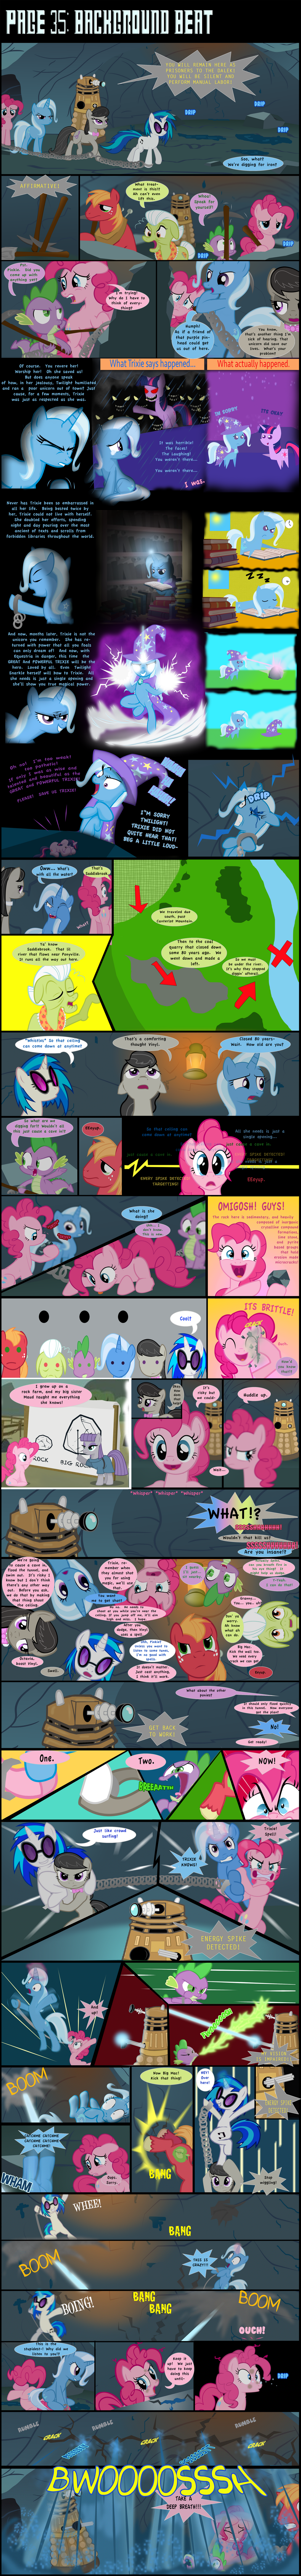 Dr. Whooves Page 35